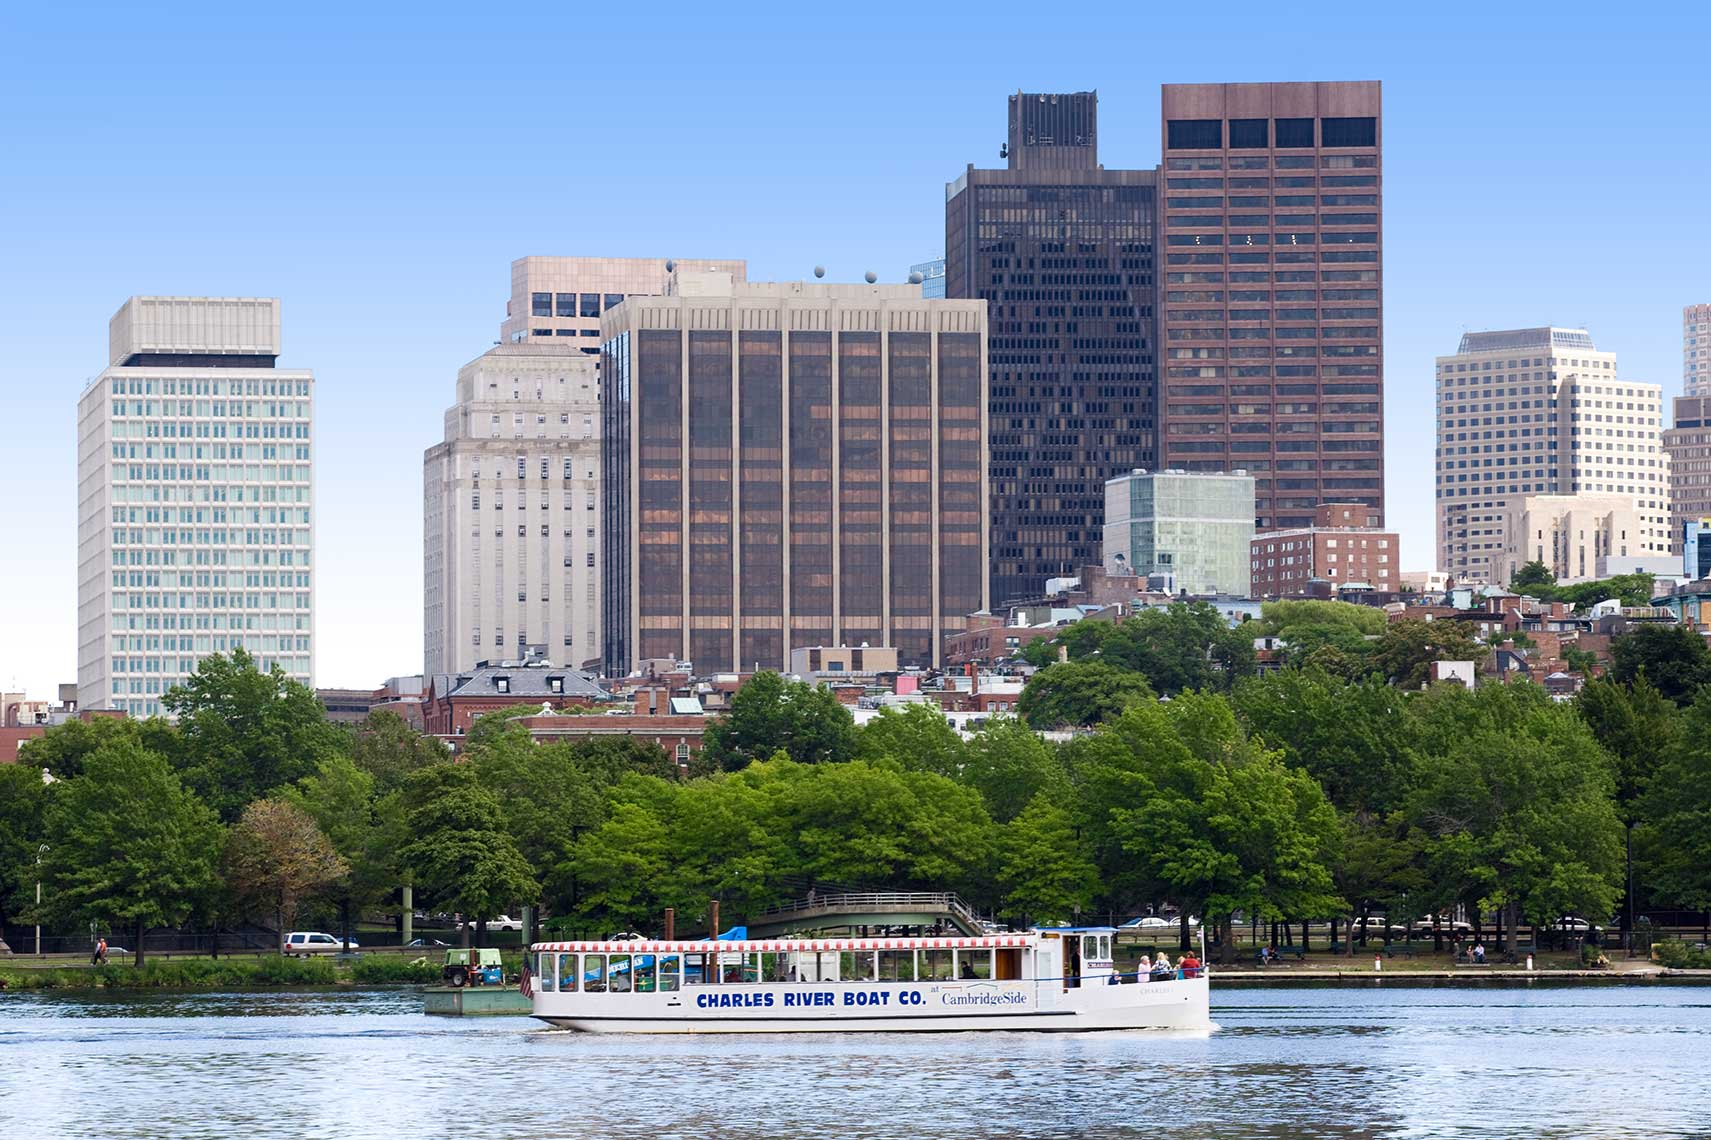 Charles Riverboat Company boat on the Charles River